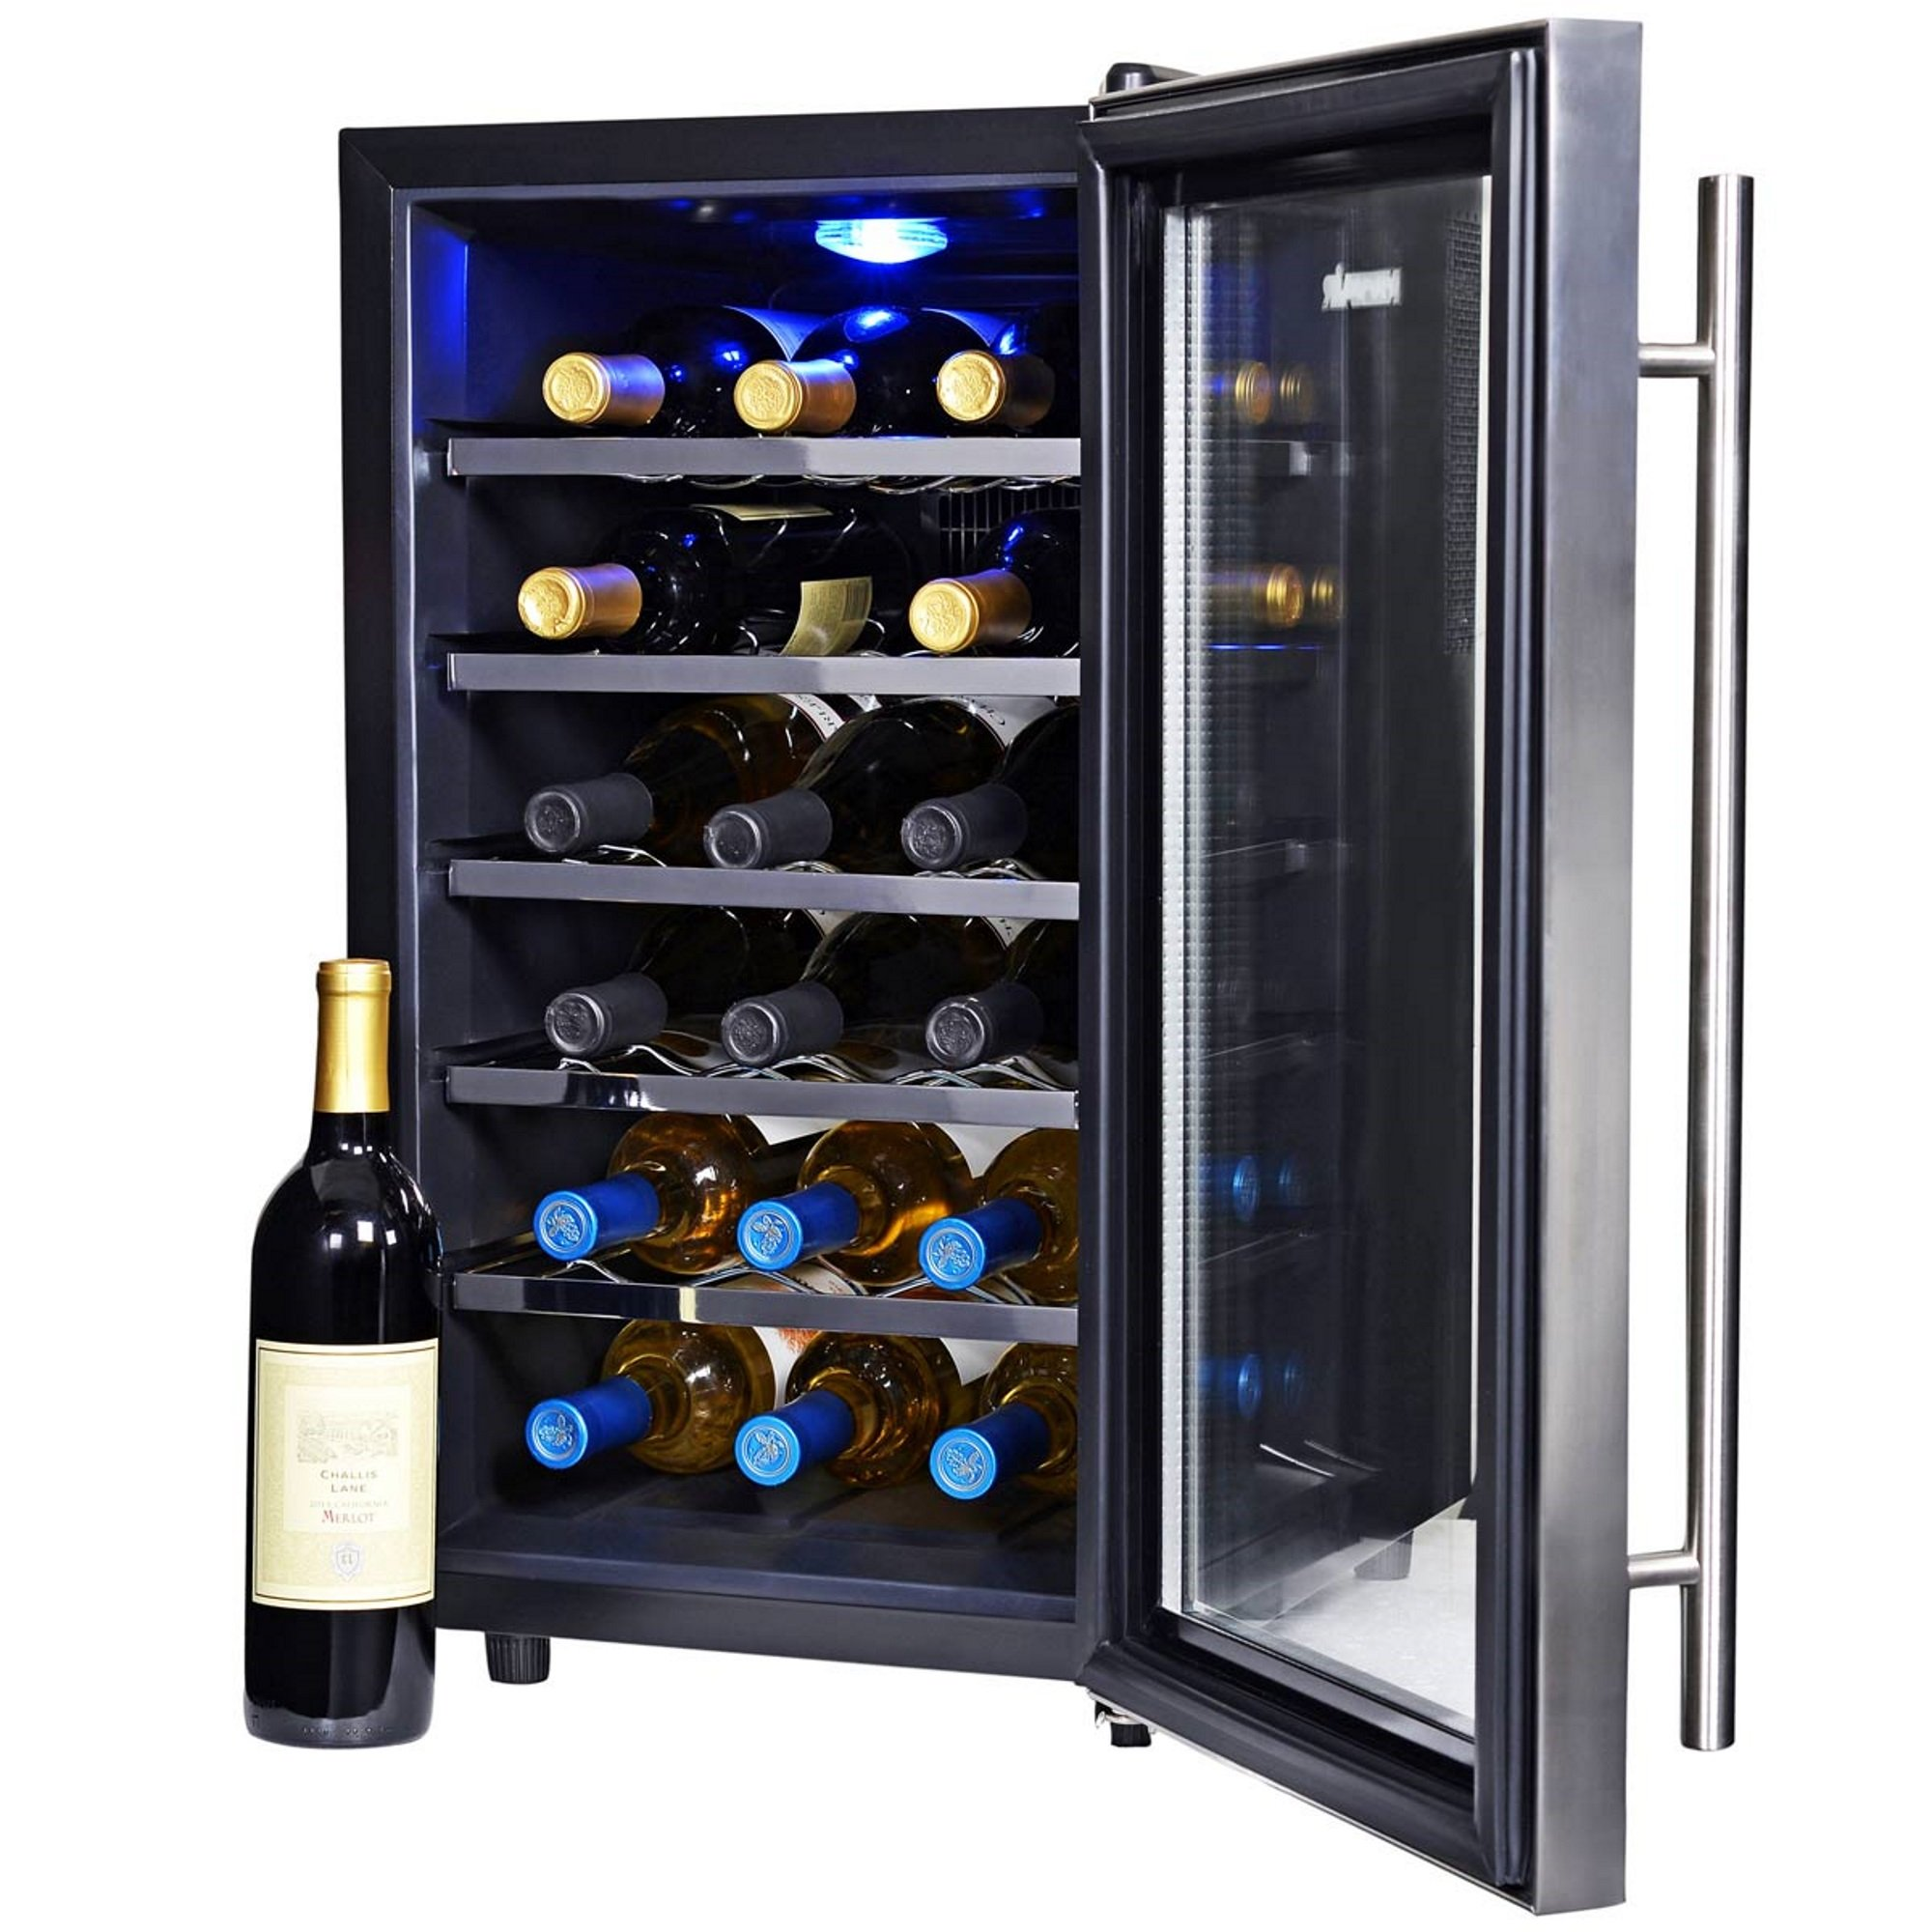 NewAir AW-181E 18 Bottle Thermoelectric Wine Cooler, Black by NewAir (Image #10)